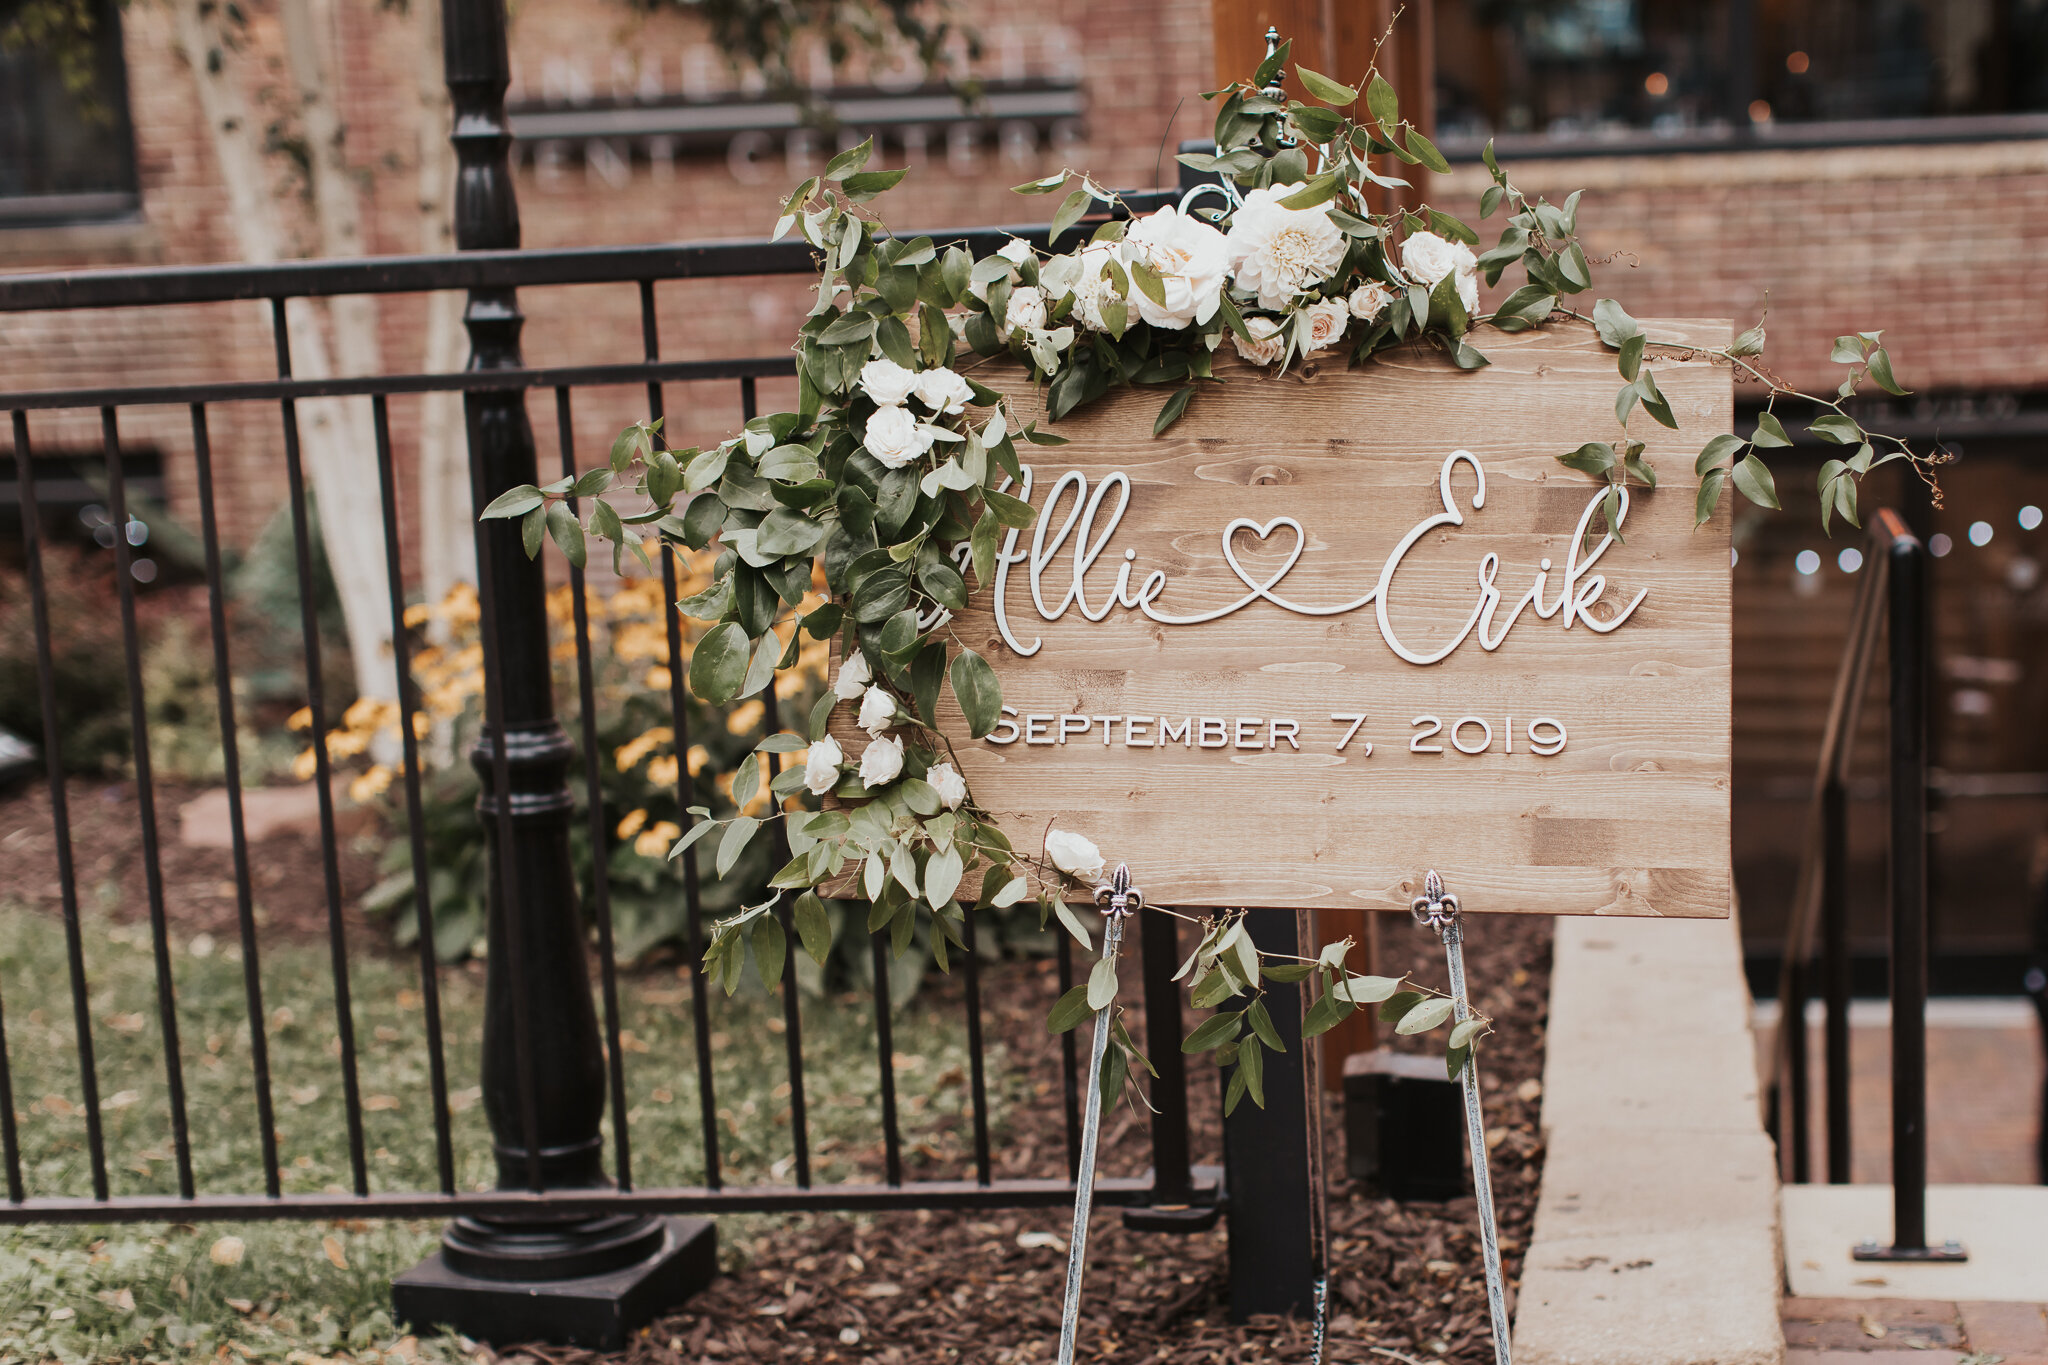 AllieErik-Wedding-26.jpg